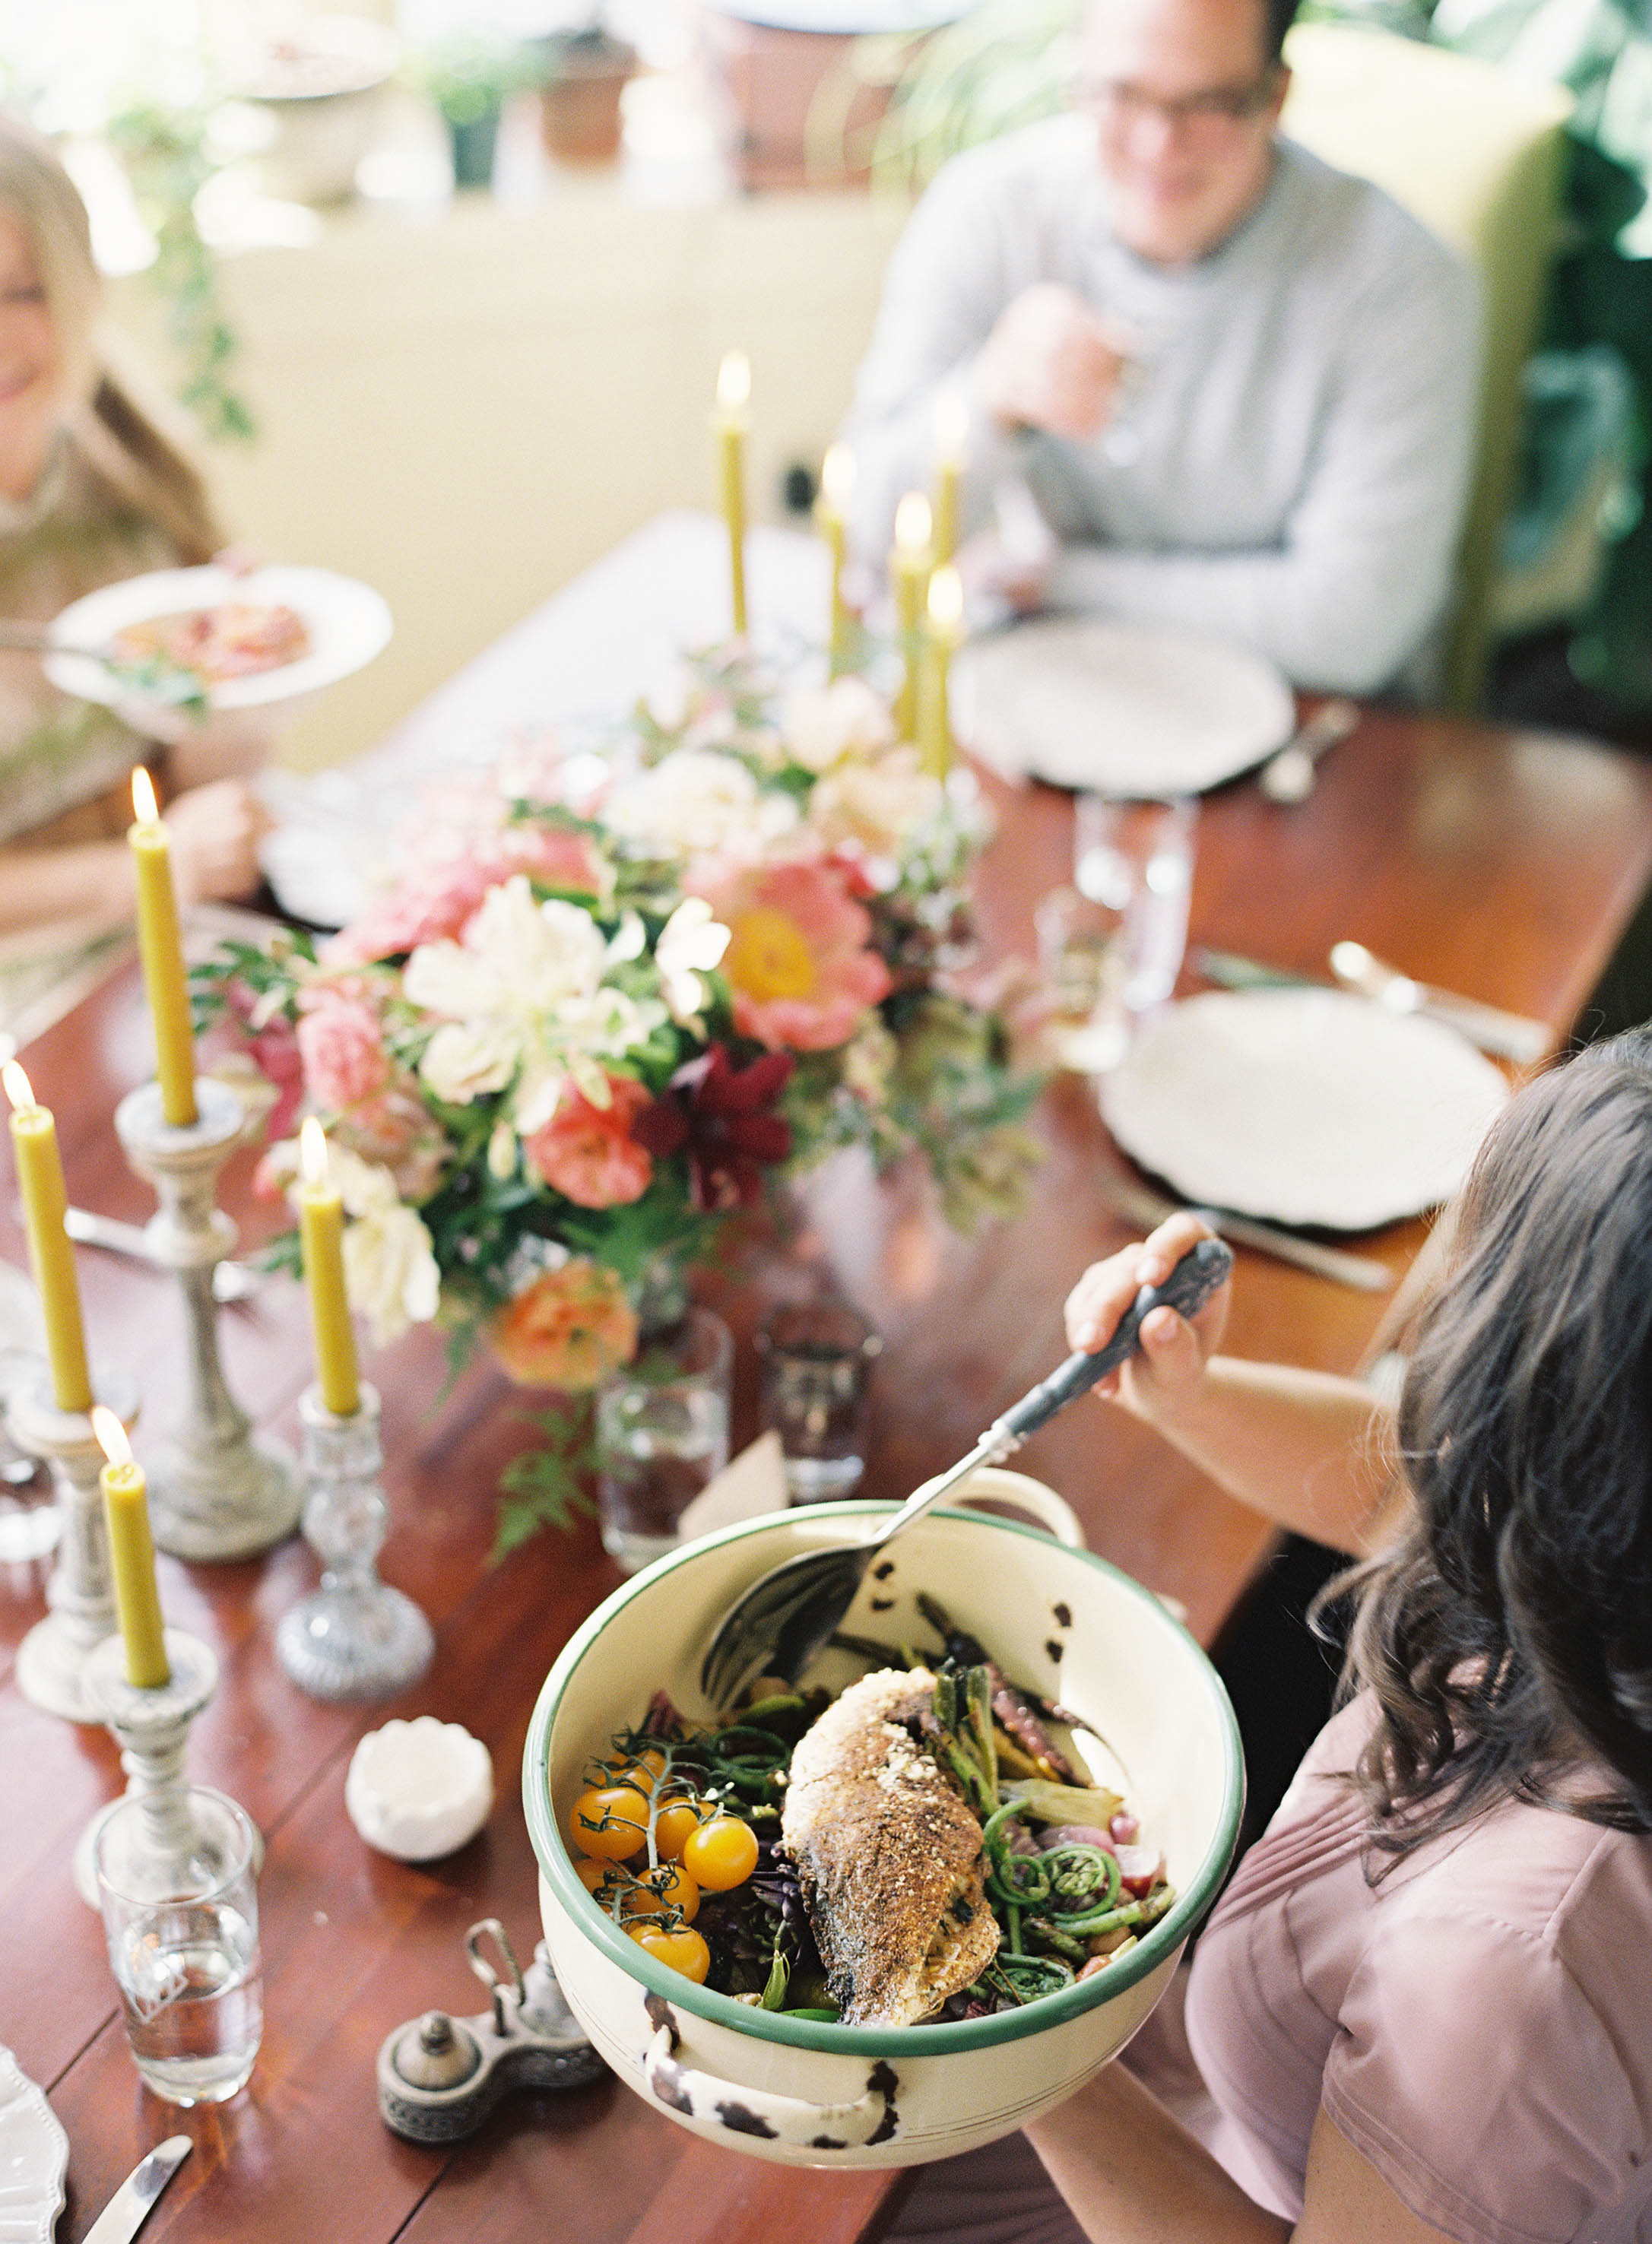 A Gathering of Old and New: How to Create a Simple Dinner Party as Featured in The Pioneer Issue / Jen Huang Photography / cottagehillmag.com